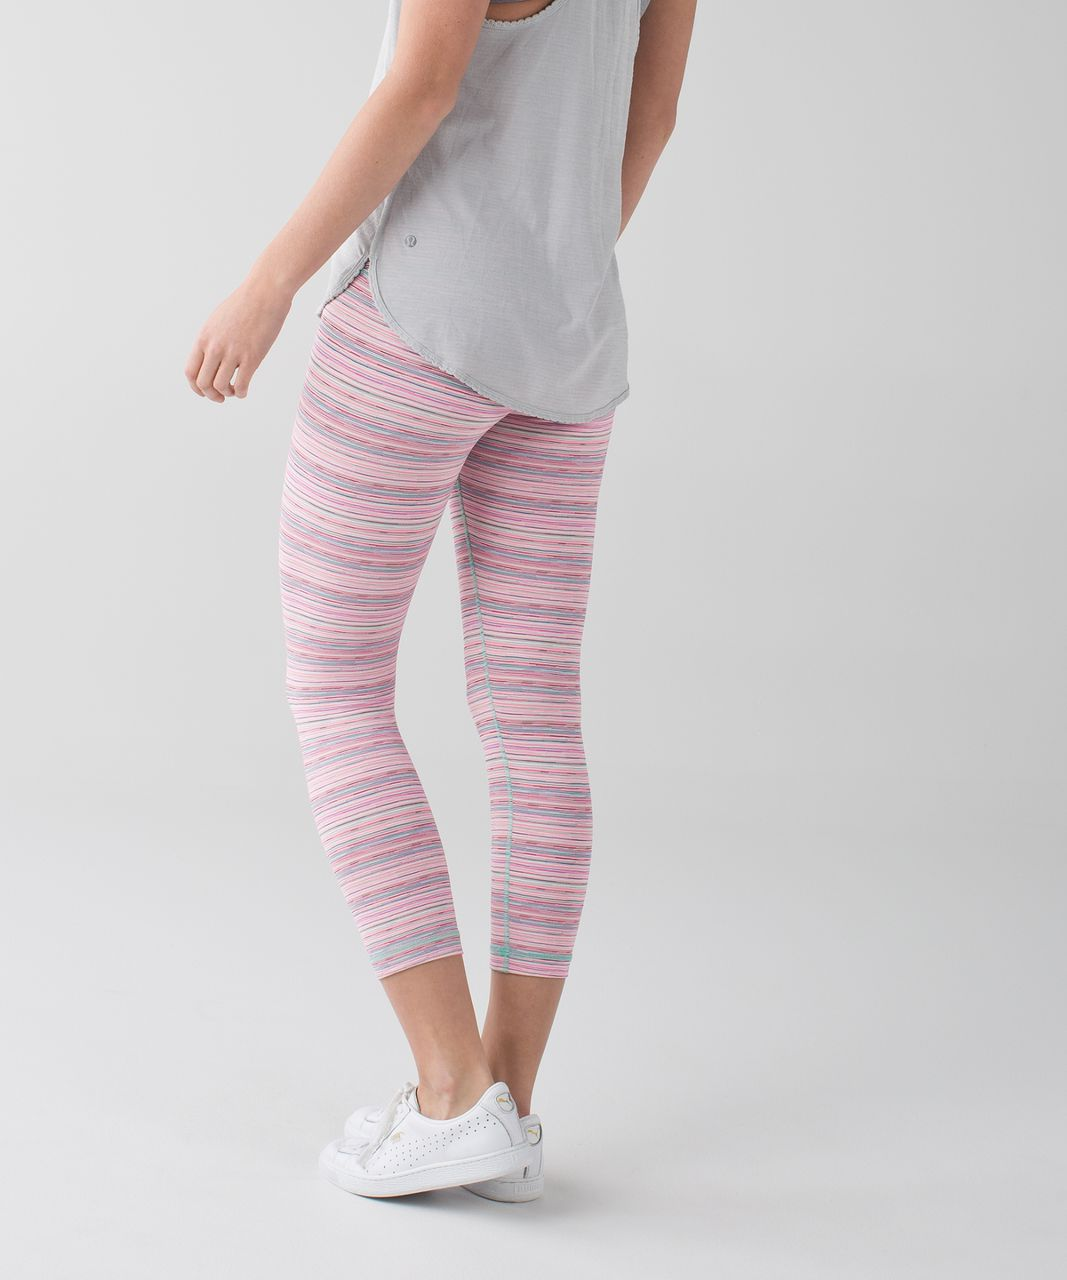 Lululemon Wunder Under Crop III *Luxtreme - Cyber Stripe Flash Light Menthol